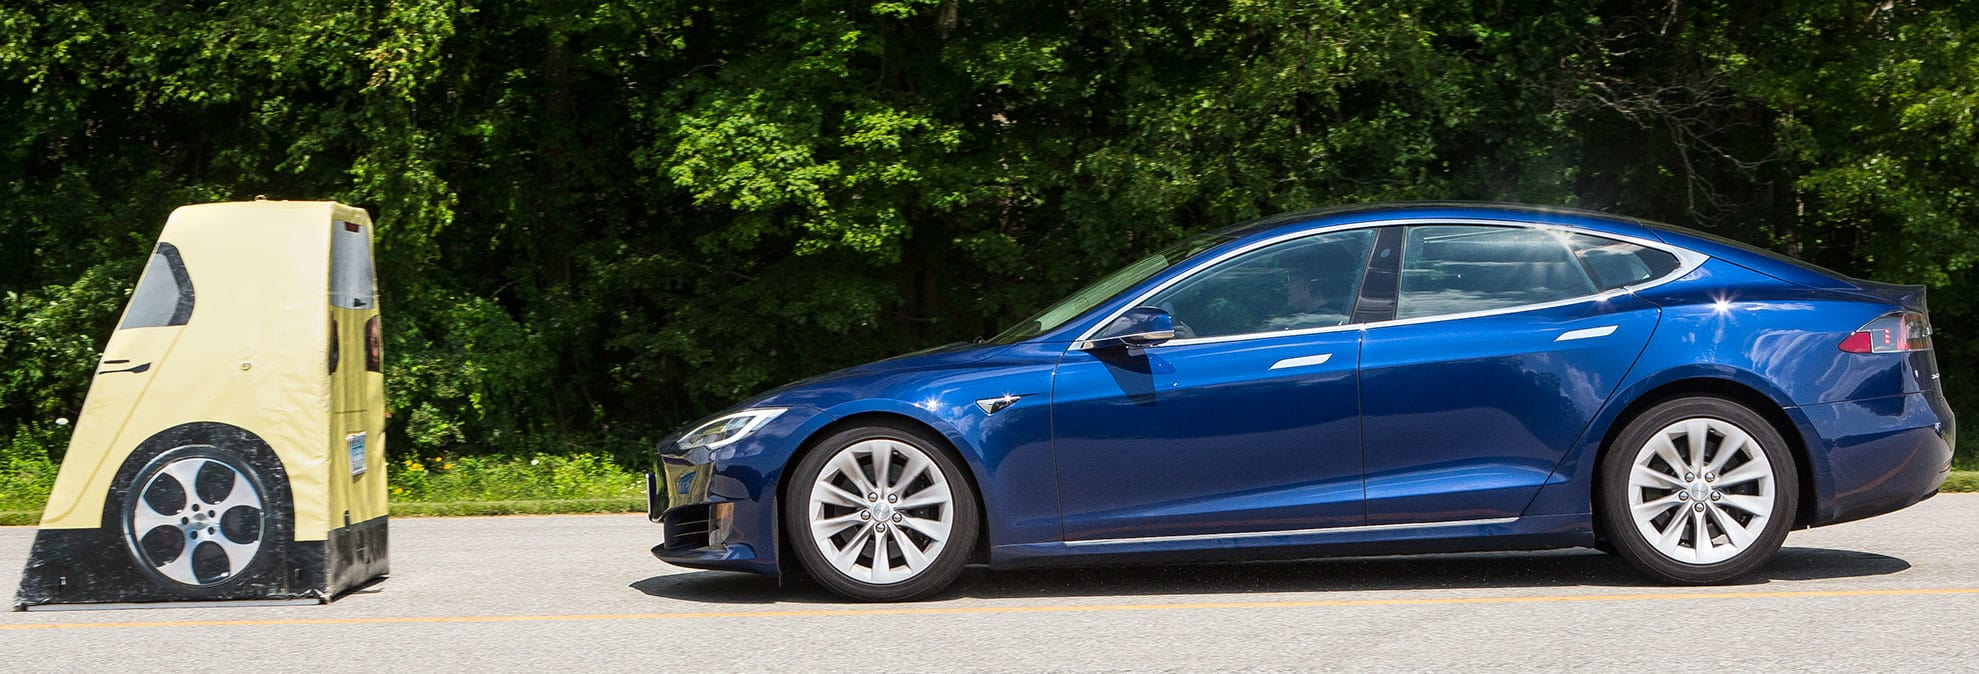 tesla model s tops consumer reports 39 ratings after getting key safety feature consumer reports. Black Bedroom Furniture Sets. Home Design Ideas